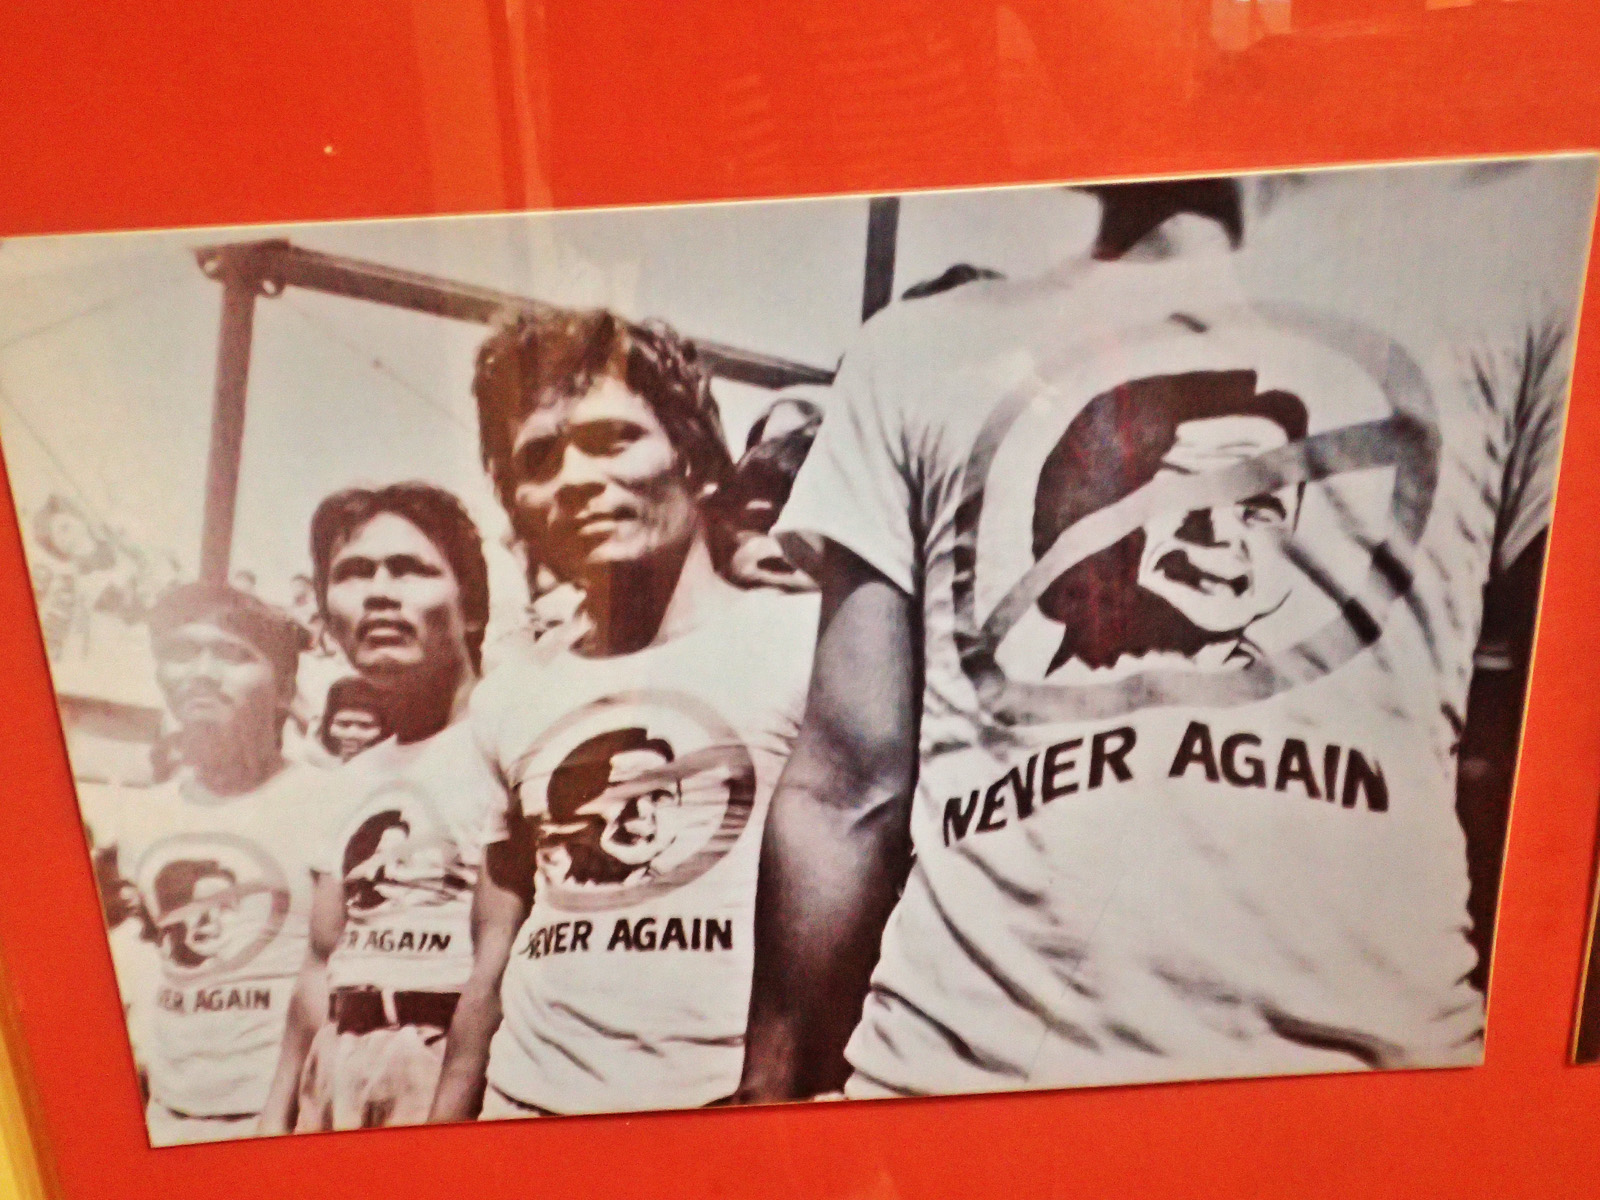 NEVER AGAIN. The fierce declaration of those who marched along EDSA.